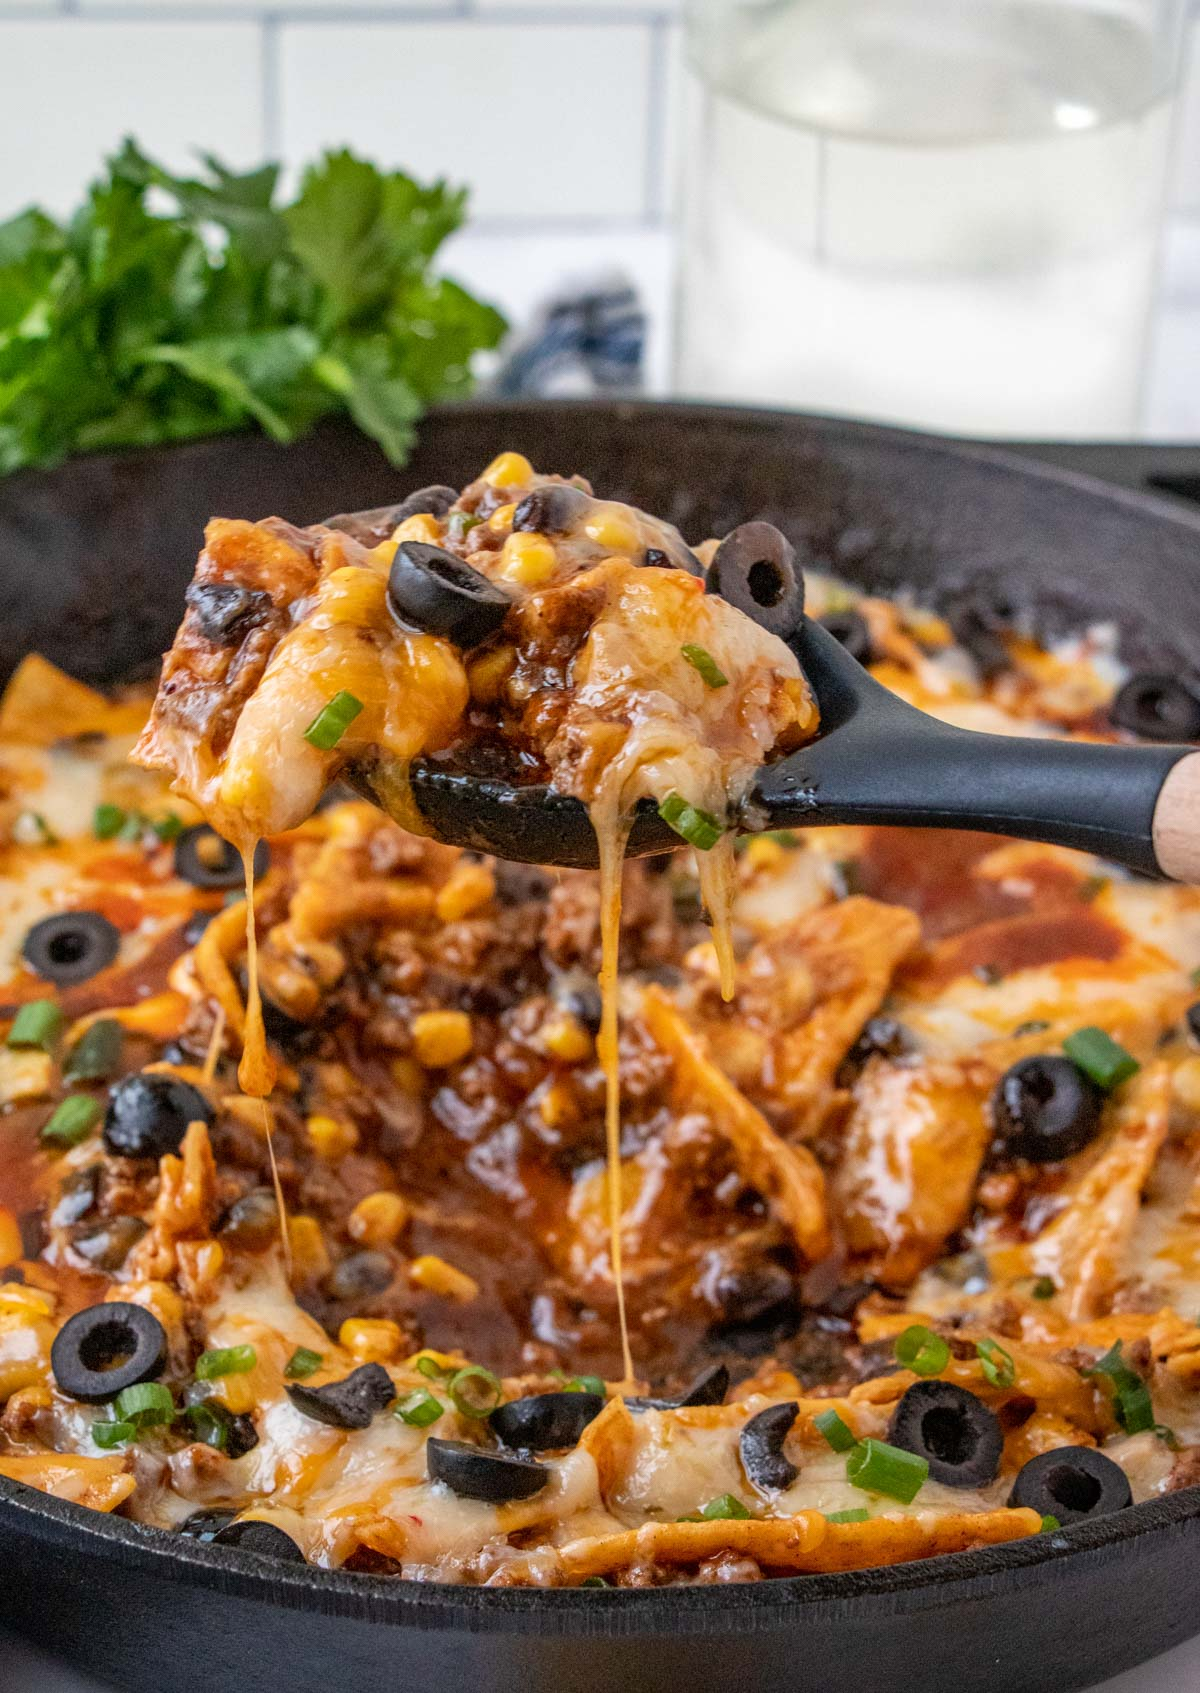 enchilada skillet, cast iron skillet, olives, black spoon